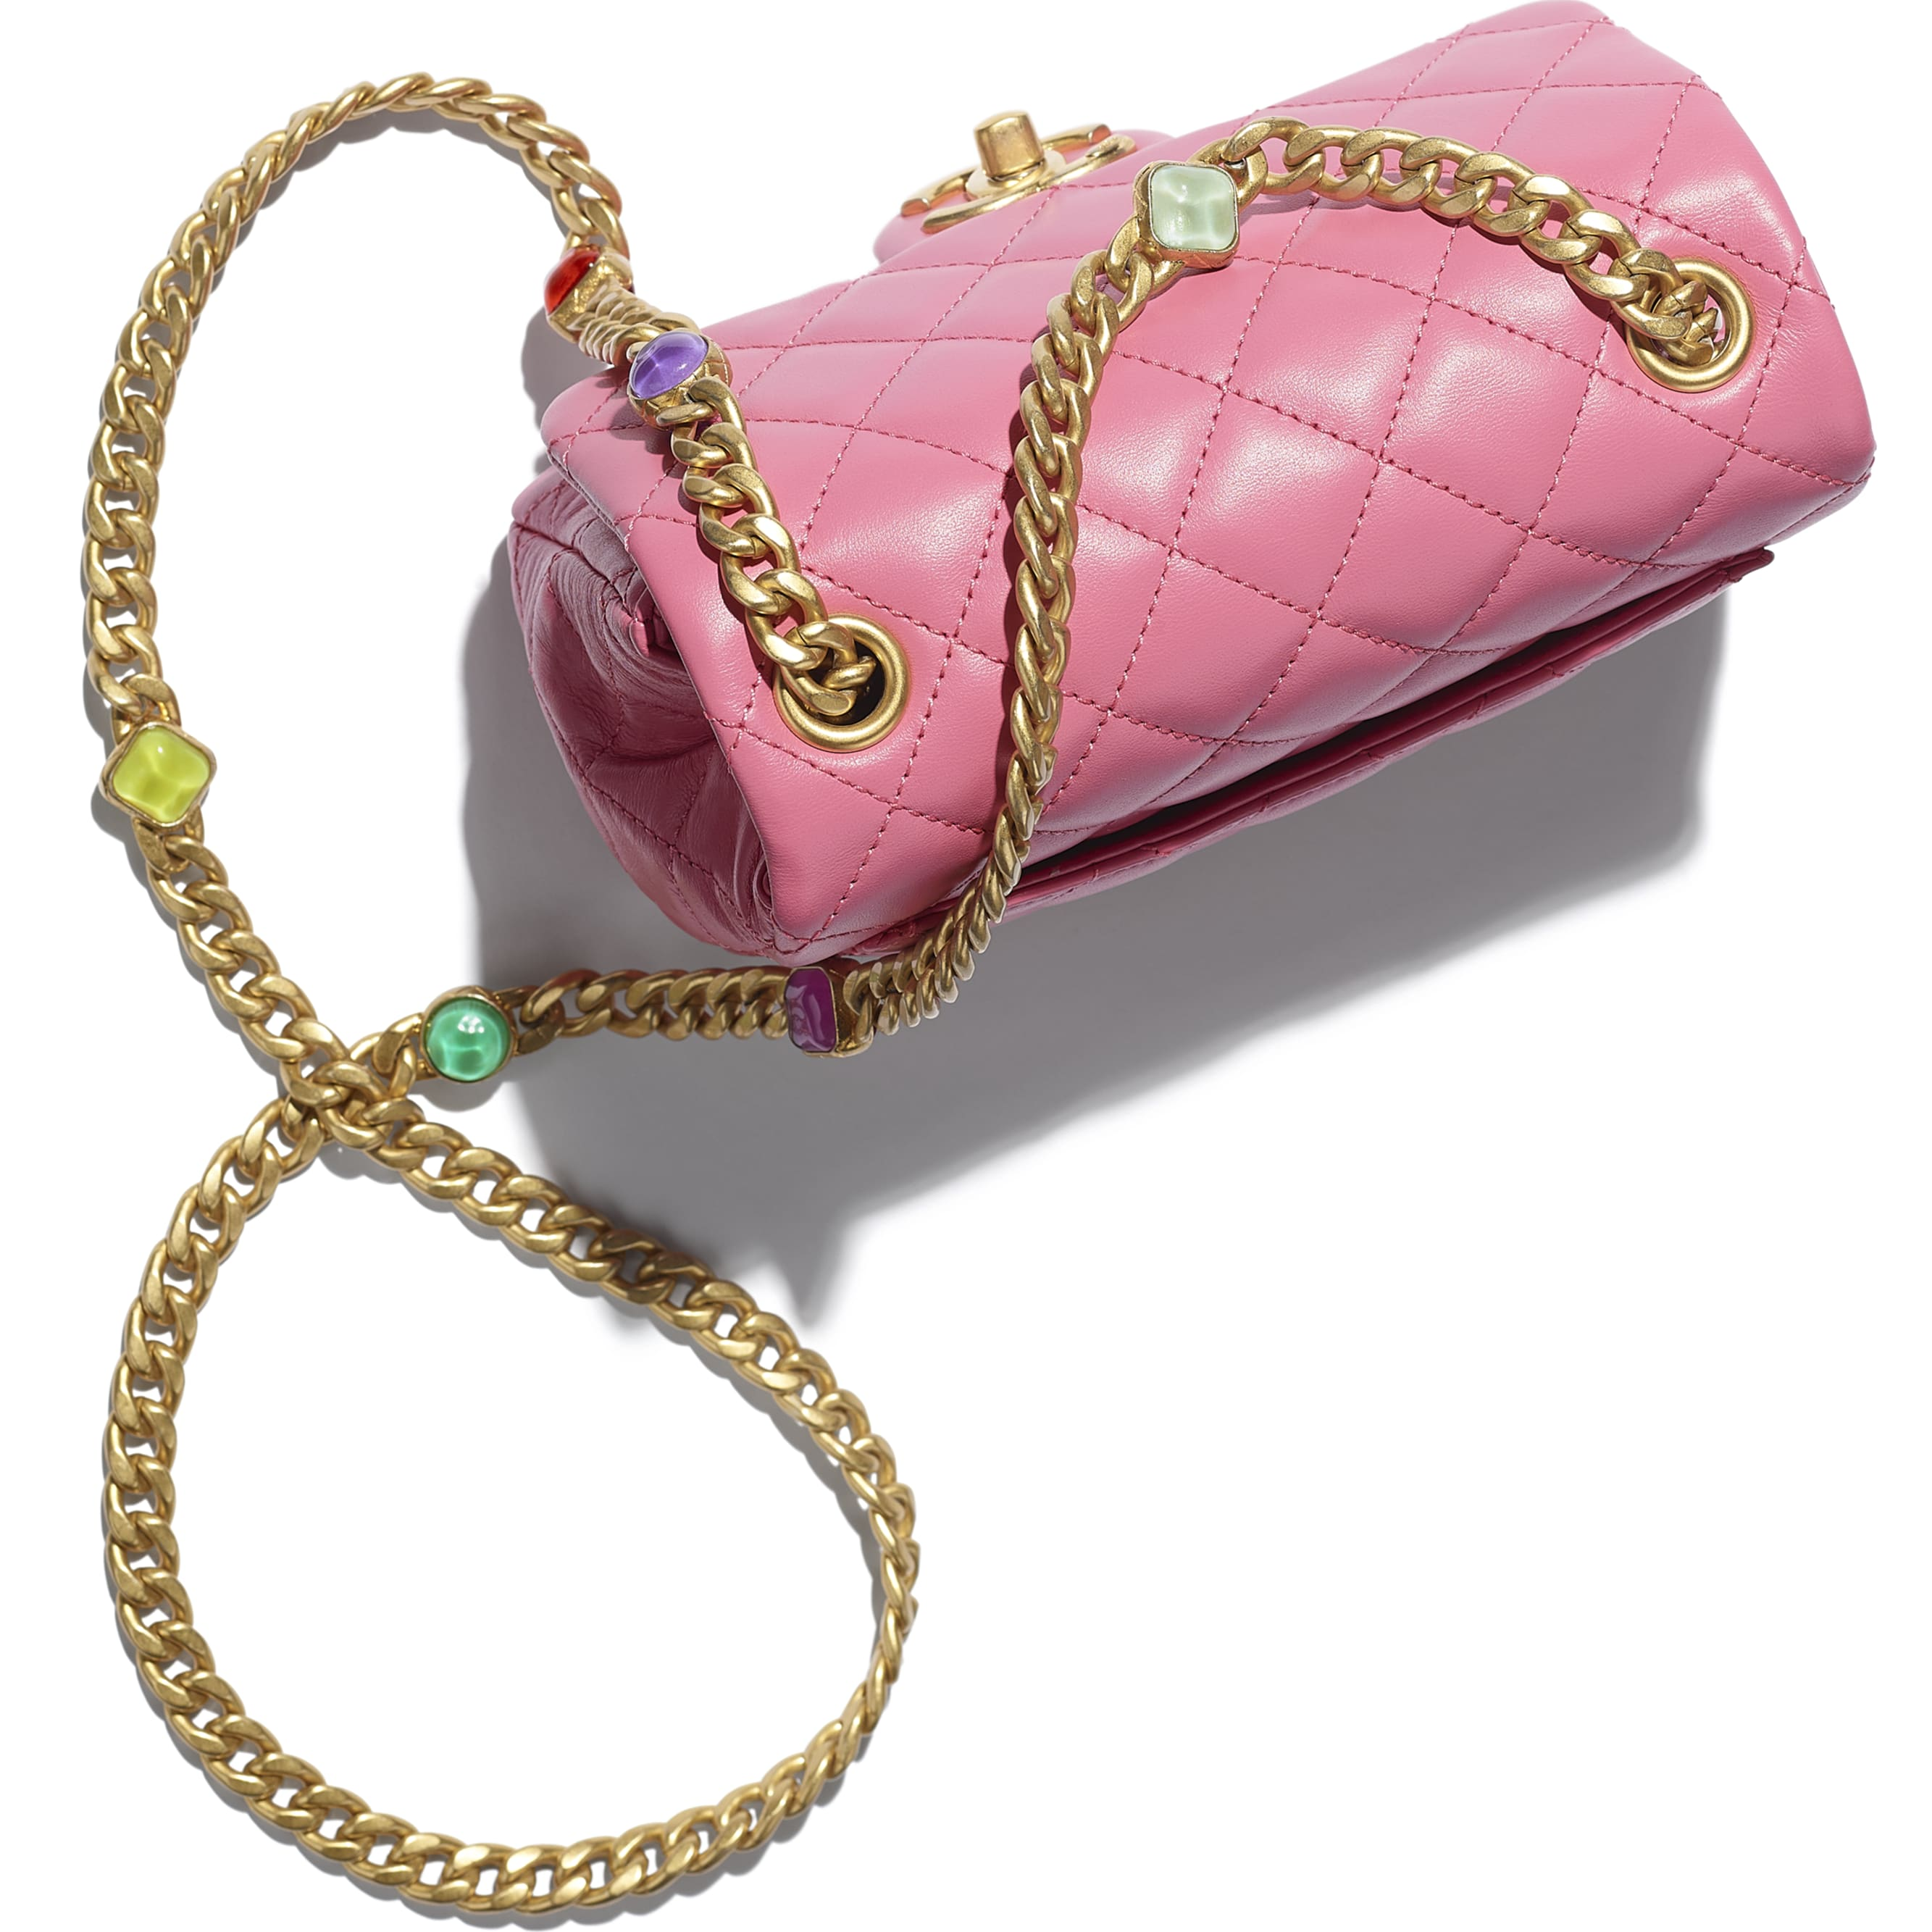 Flap Bag - Pink - Lambskin, Resin & Gold-Tone Metal - CHANEL - Extra view - see standard sized version